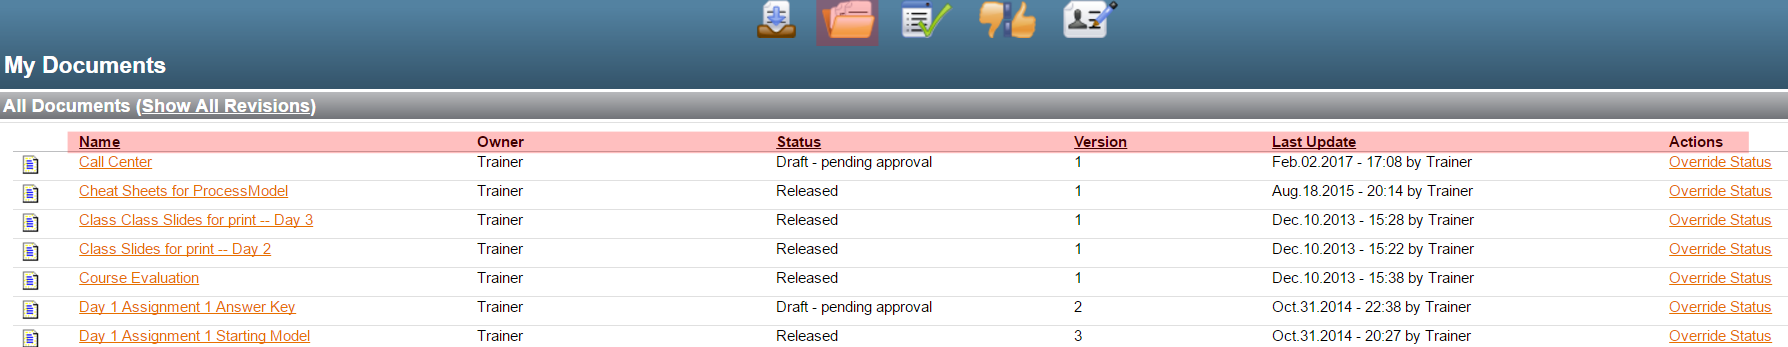 my documents view and sorting ability